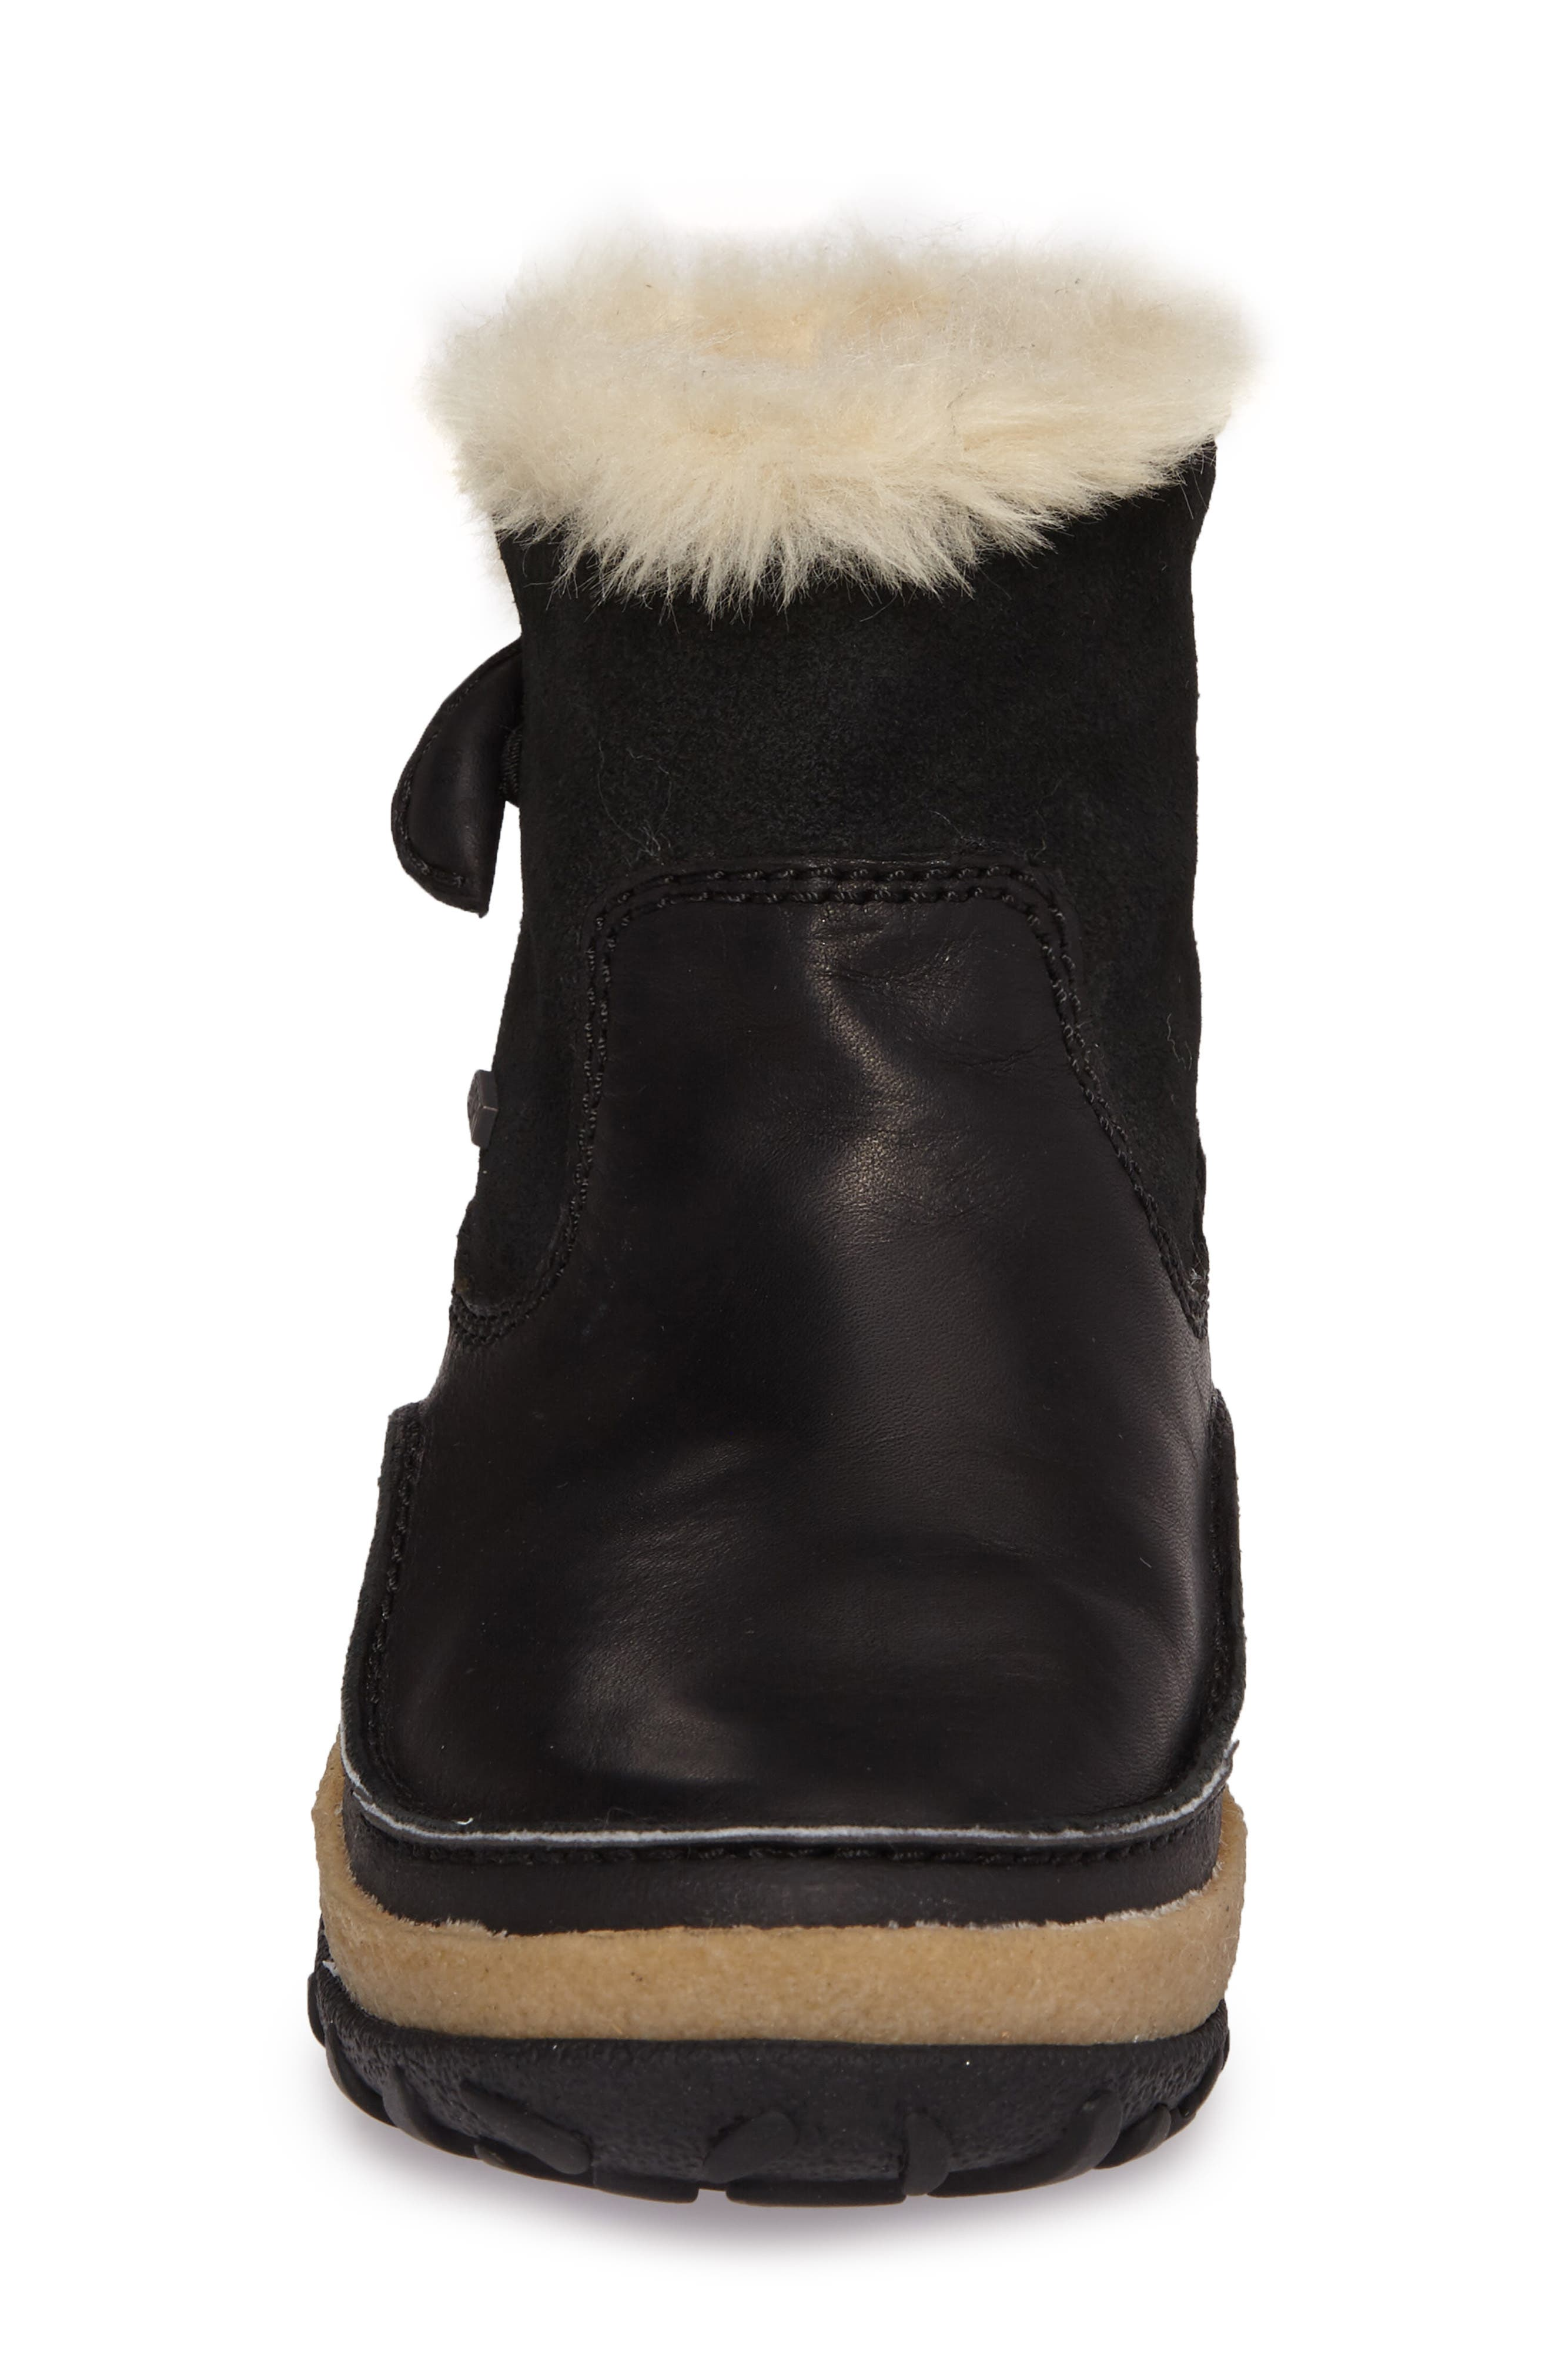 Tremblant Pull-On Polar Waterproof Bootie,                             Alternate thumbnail 13, color,